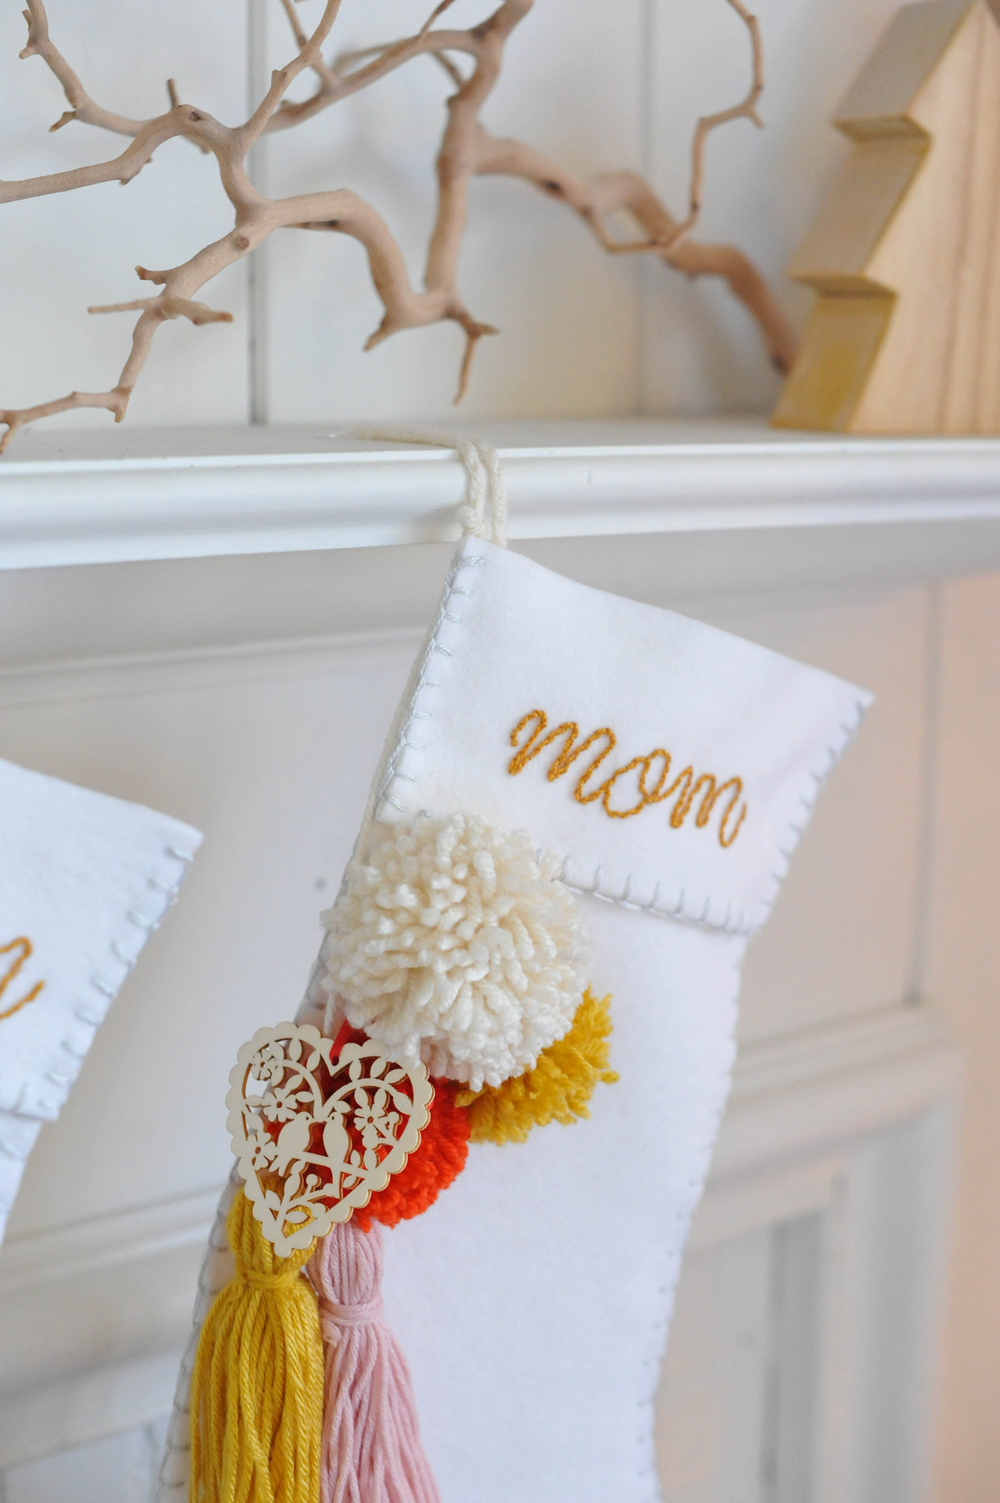 DIY Christmas Stocking with Tassels and Pom-poms